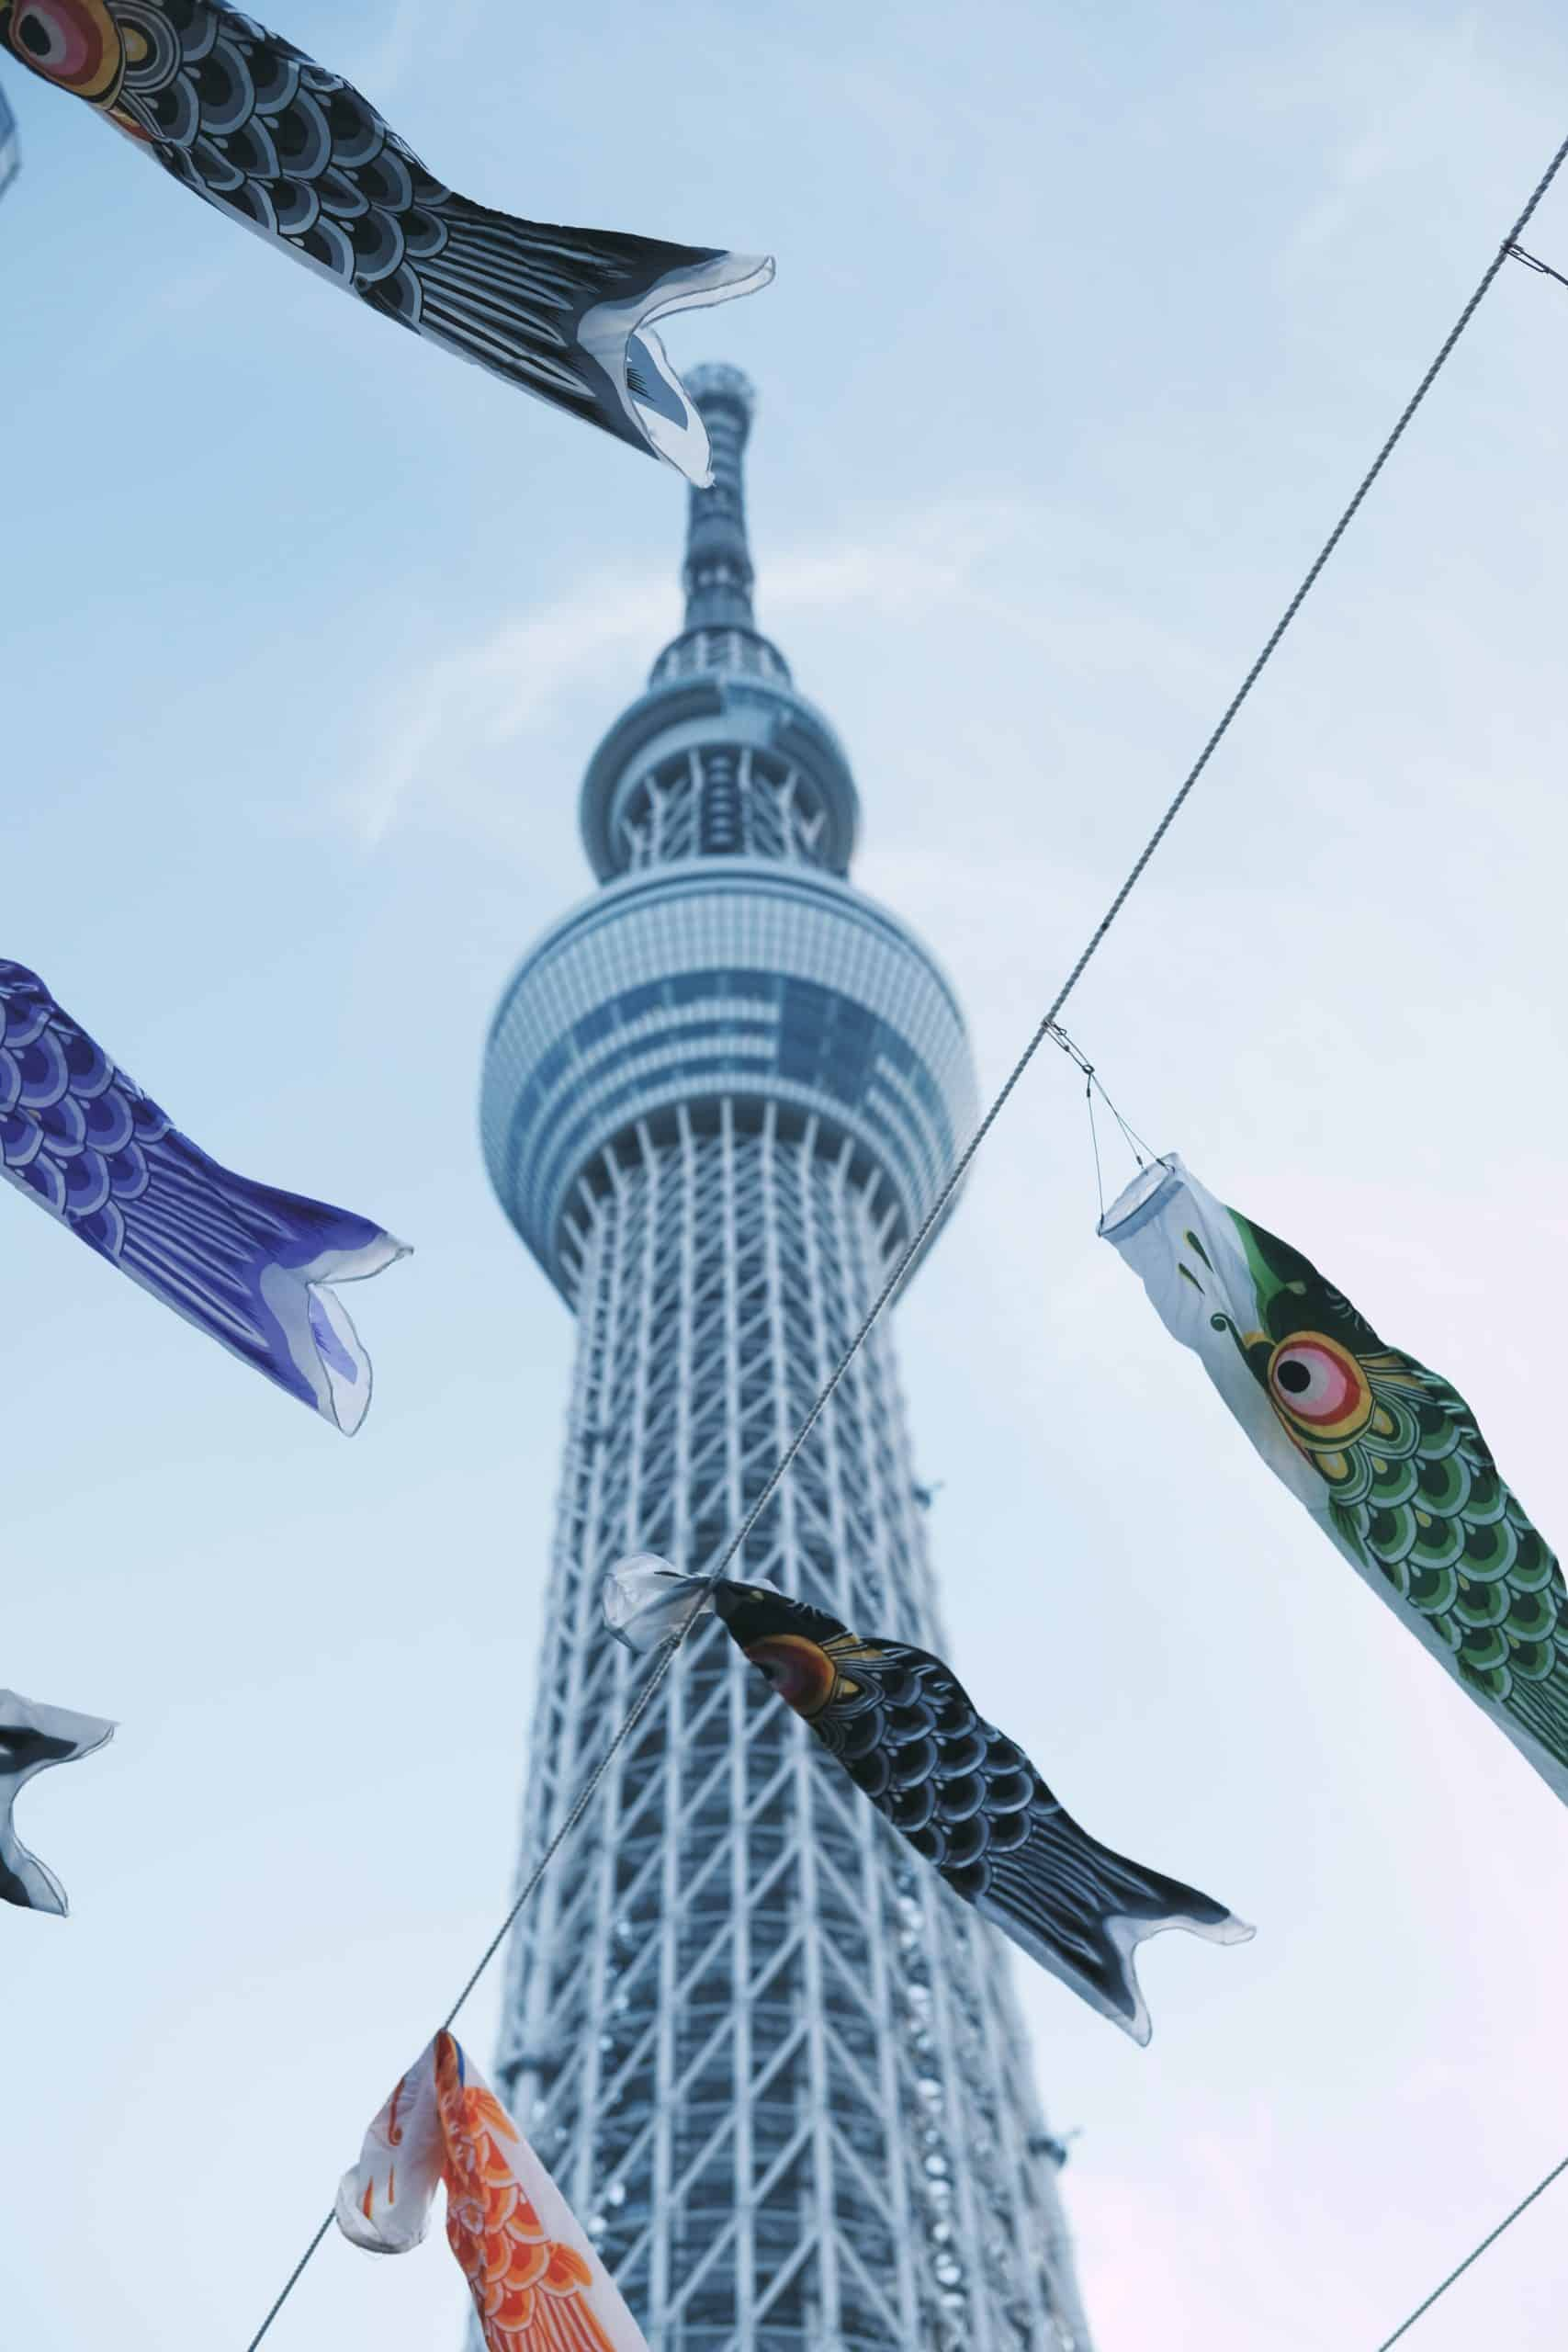 Find Your True Spirit with Adventure in the Japanese Way!